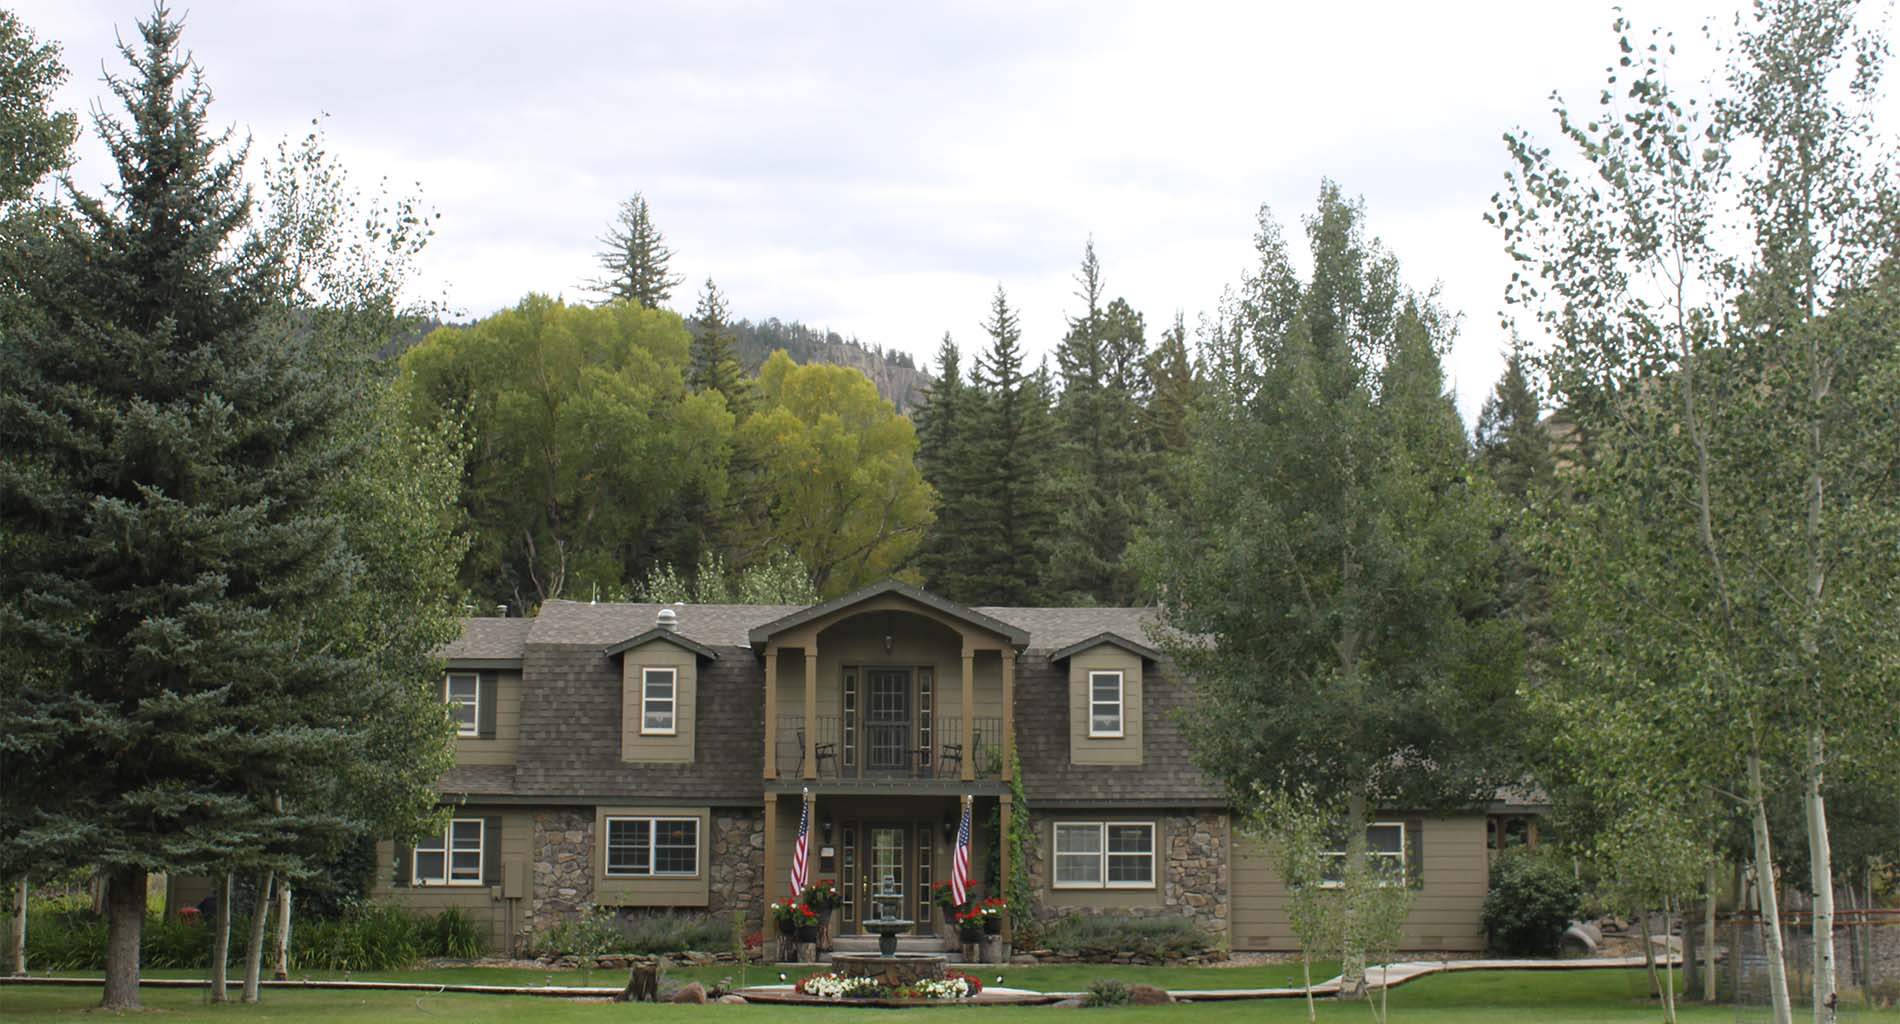 Front exterior of inn with green grass and trees, red and white flowers and two American flags